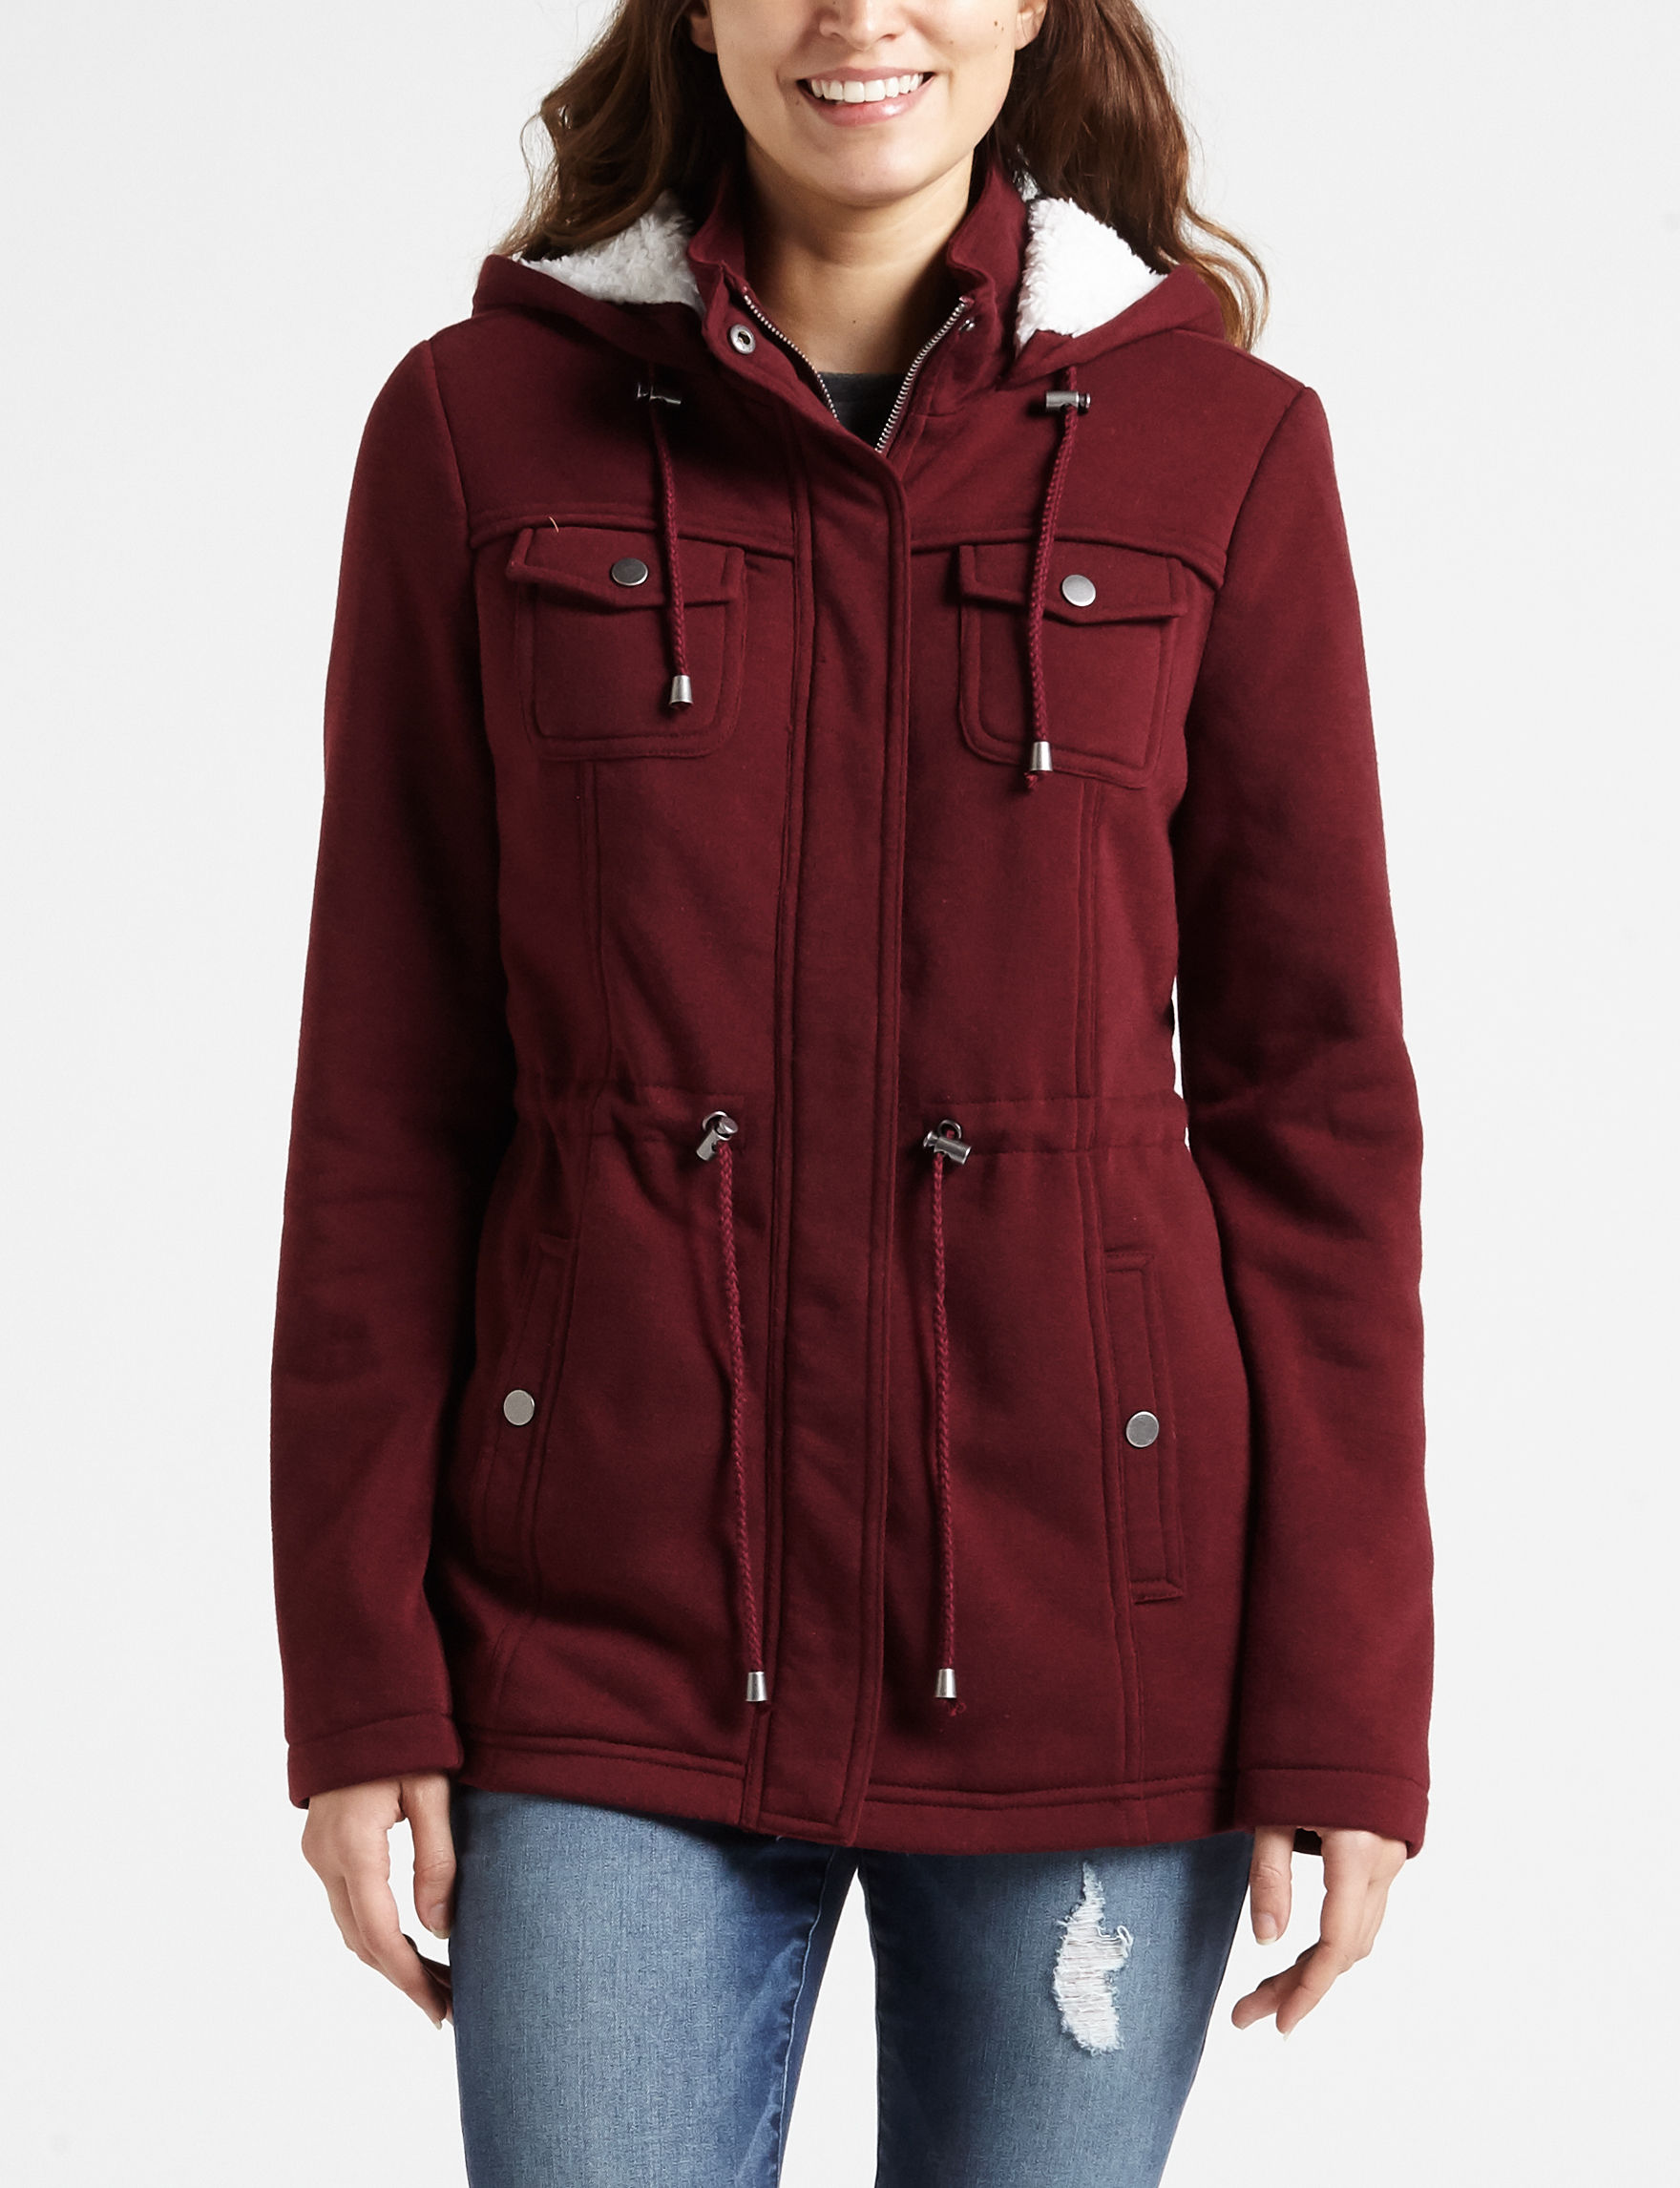 Ashley Red Fleece & Soft Shell Jackets